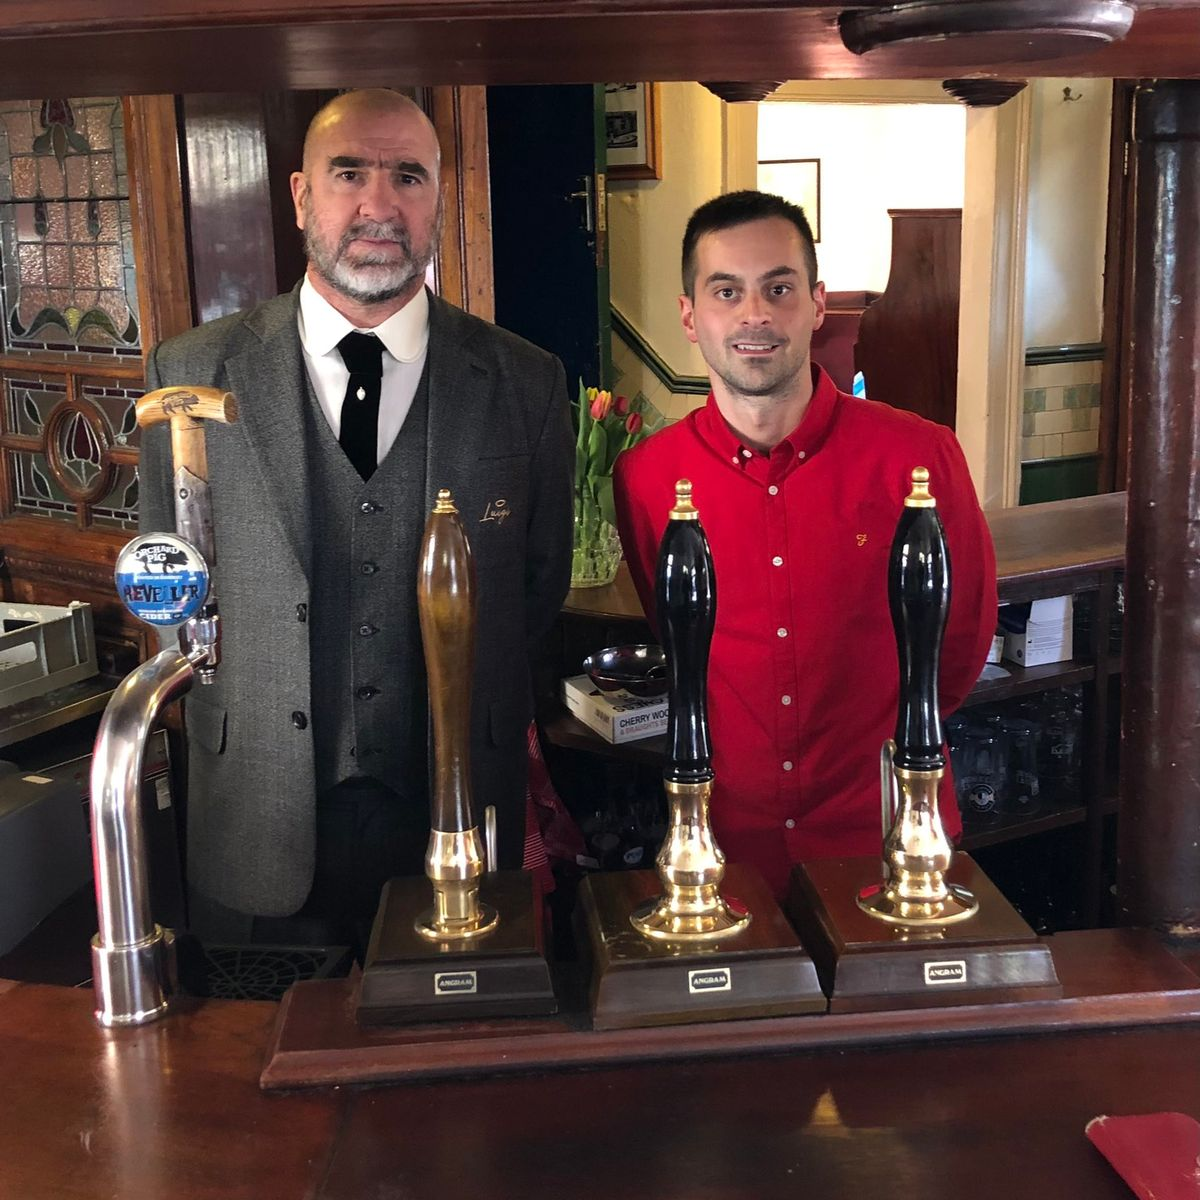 Some celebrity searches aren't as safe as others. Man Utd Legend Eric Cantona Pops Into Famous Manc Pub To Celebrate Reopening Daily Star